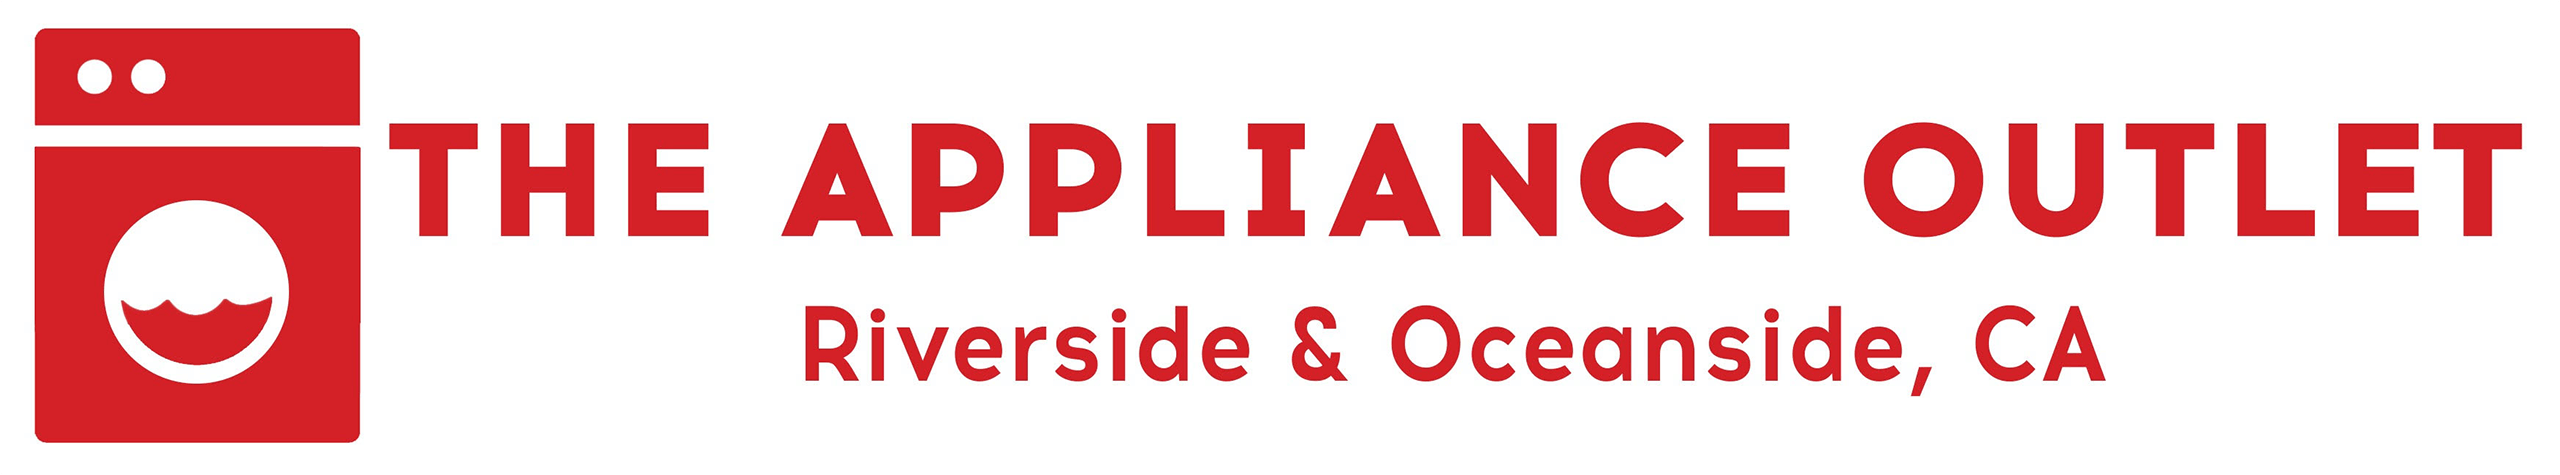 The Appliance Outlet Logo